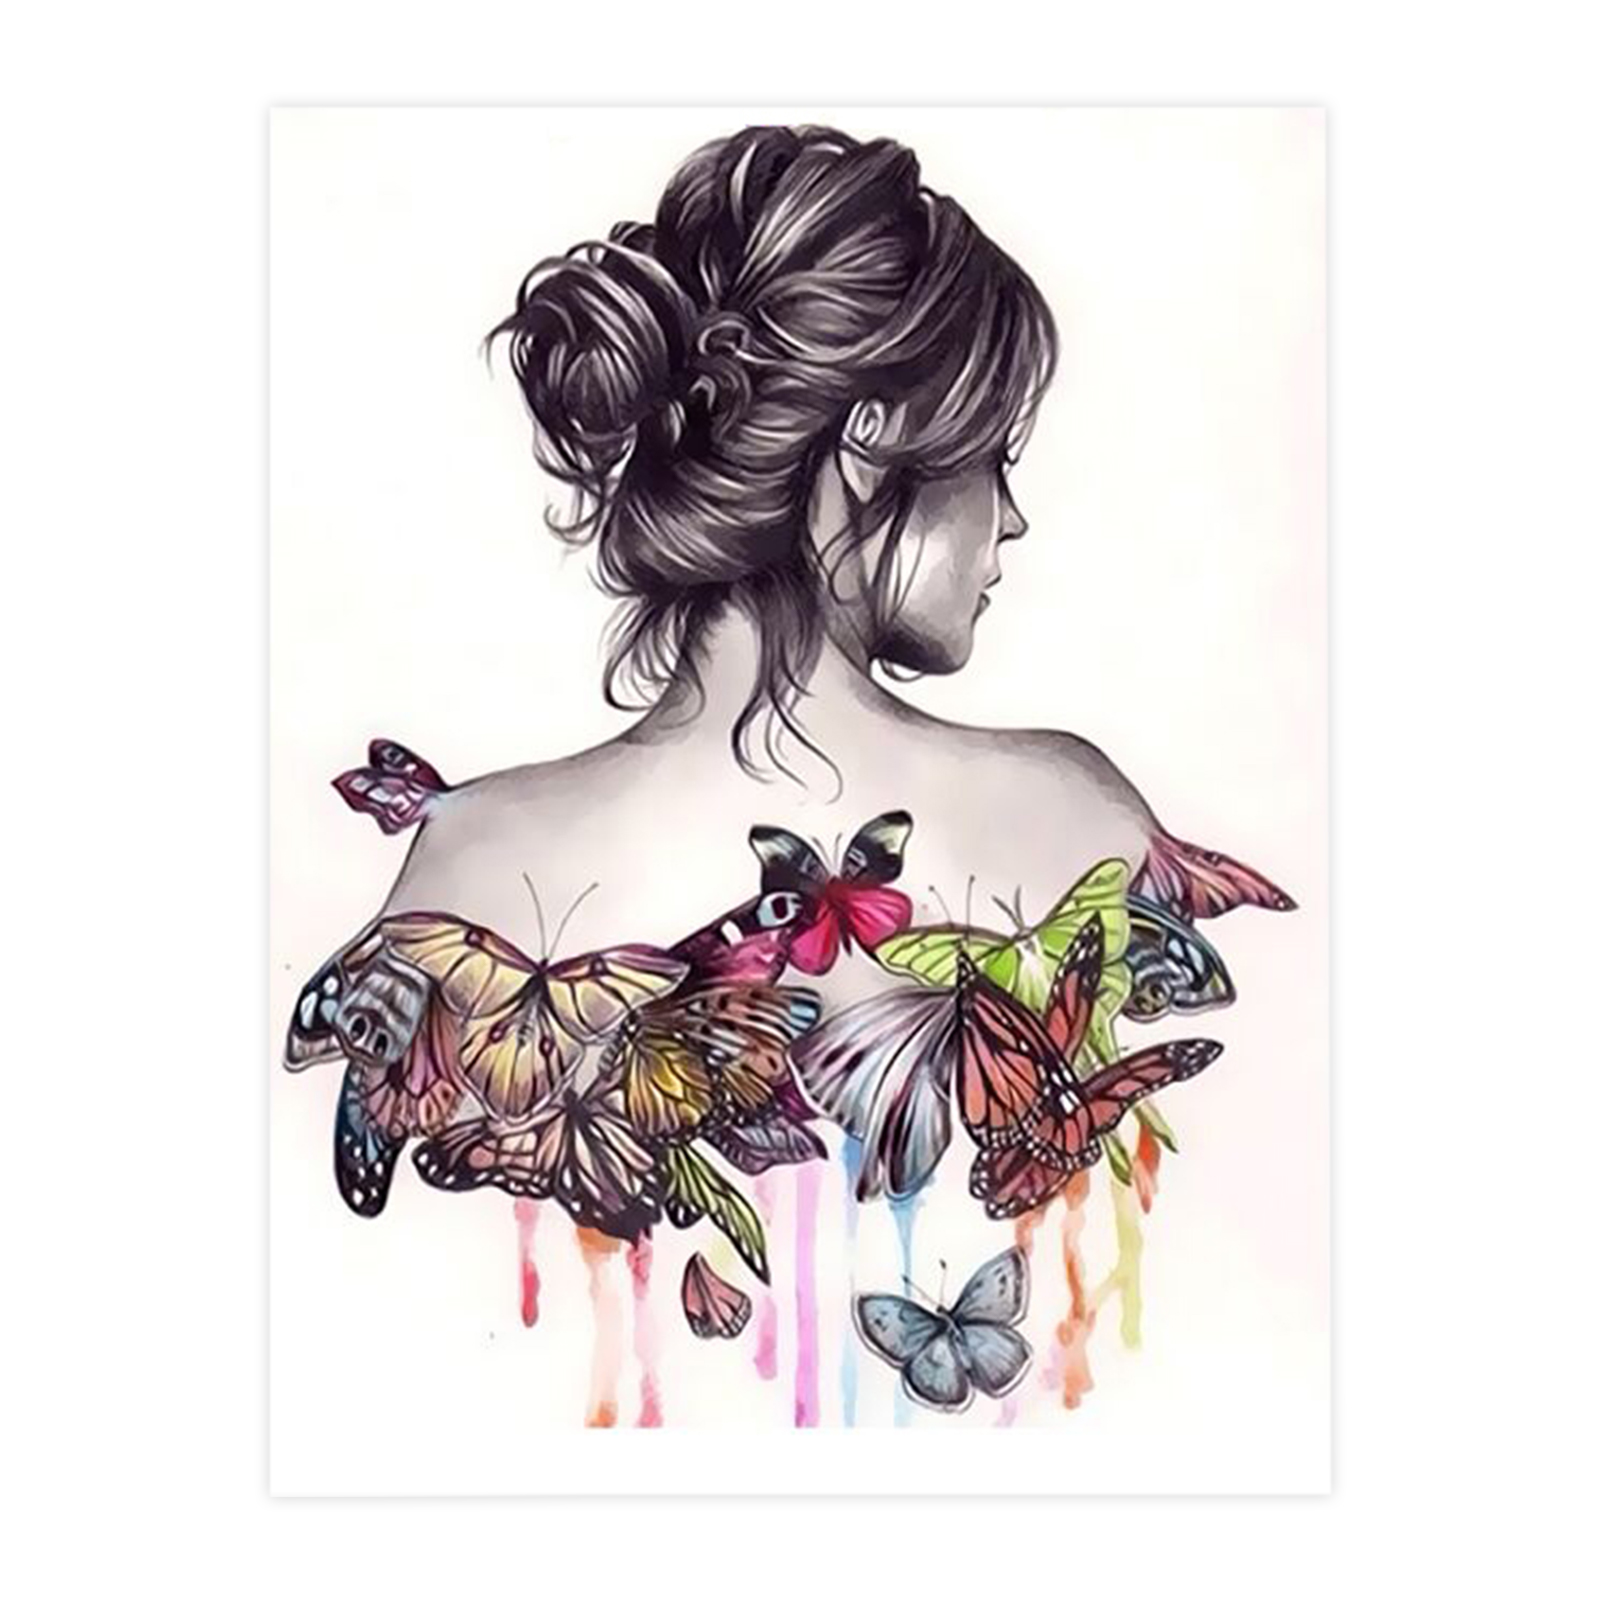 Woman Art Portrait Paint By number For Adults Kit Diy Painting Kit Painting On Canvas Wall Picture Frame Set Diy Painting Wall Picture